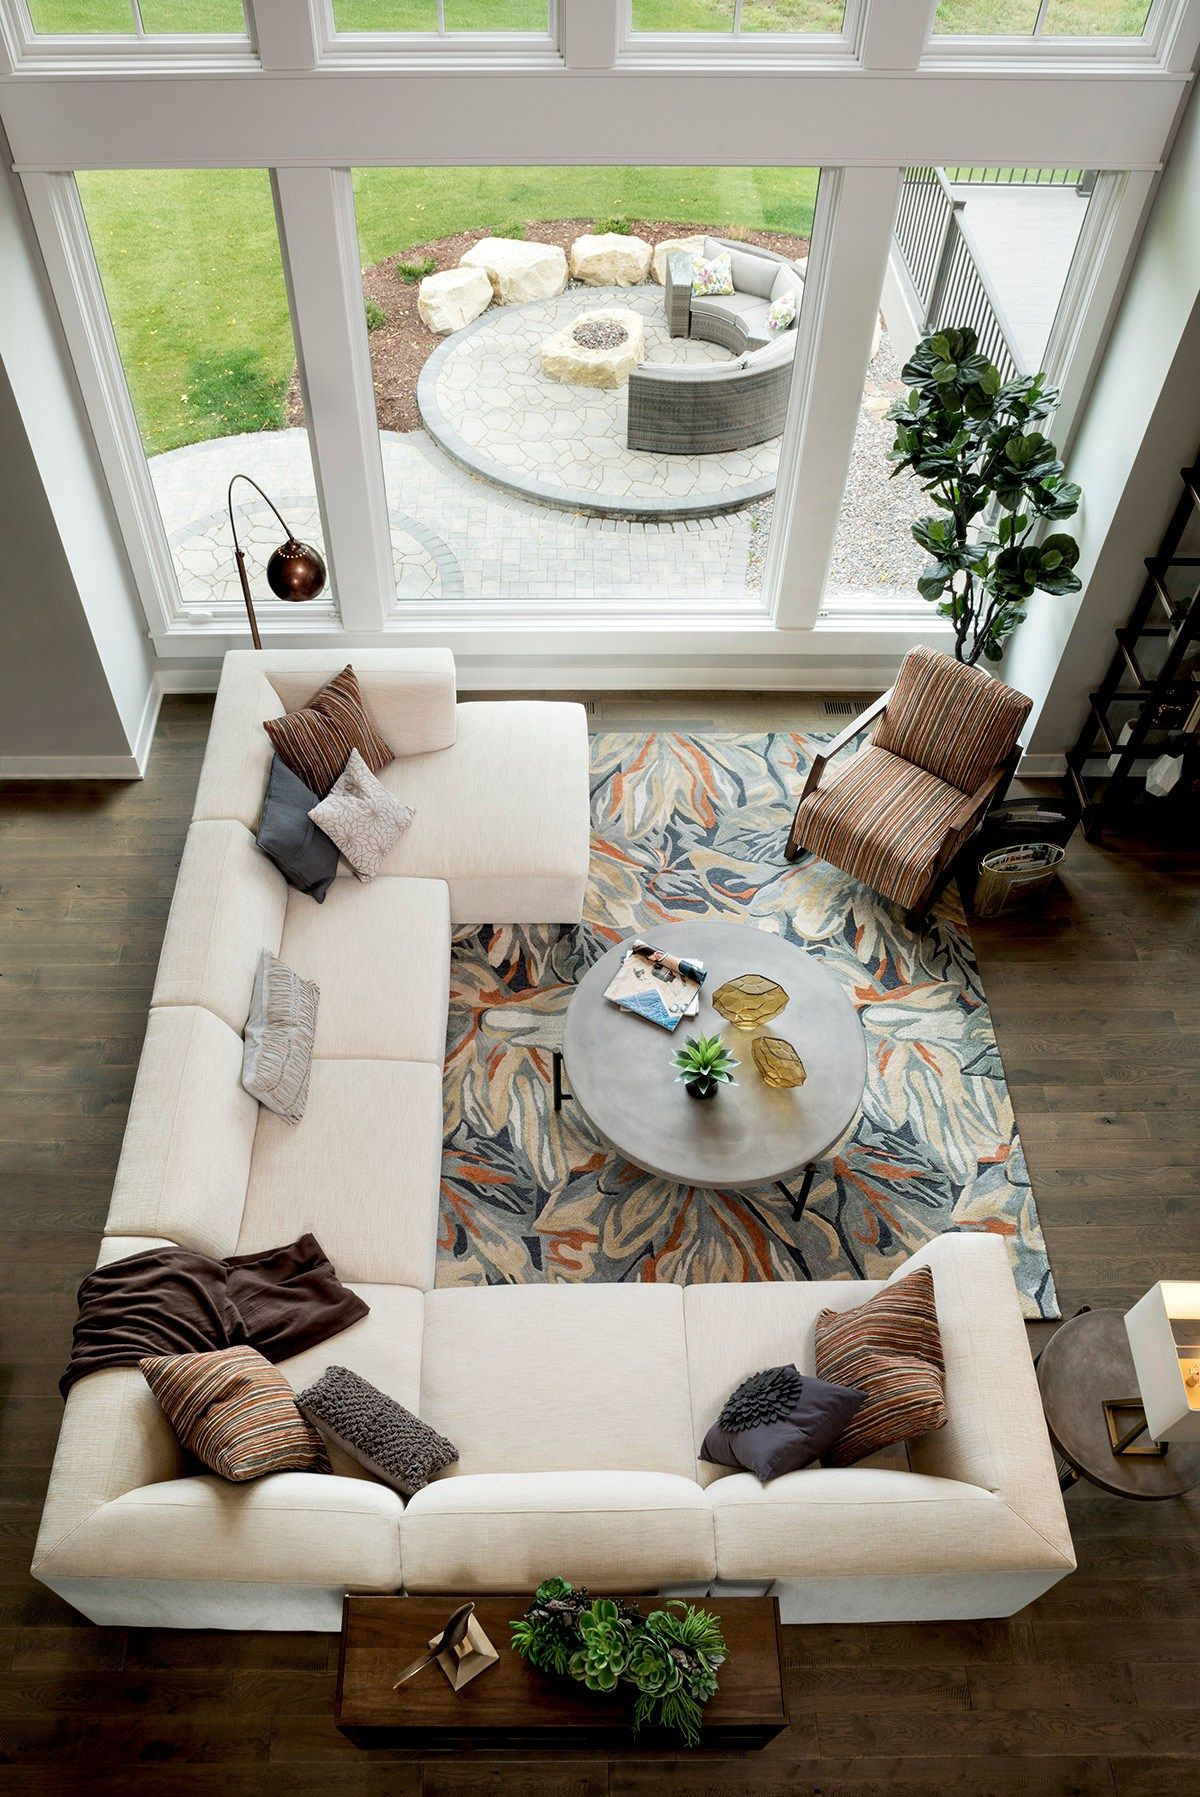 Best Thinking Outside The Box When Furnishing Your Space 400 x 300